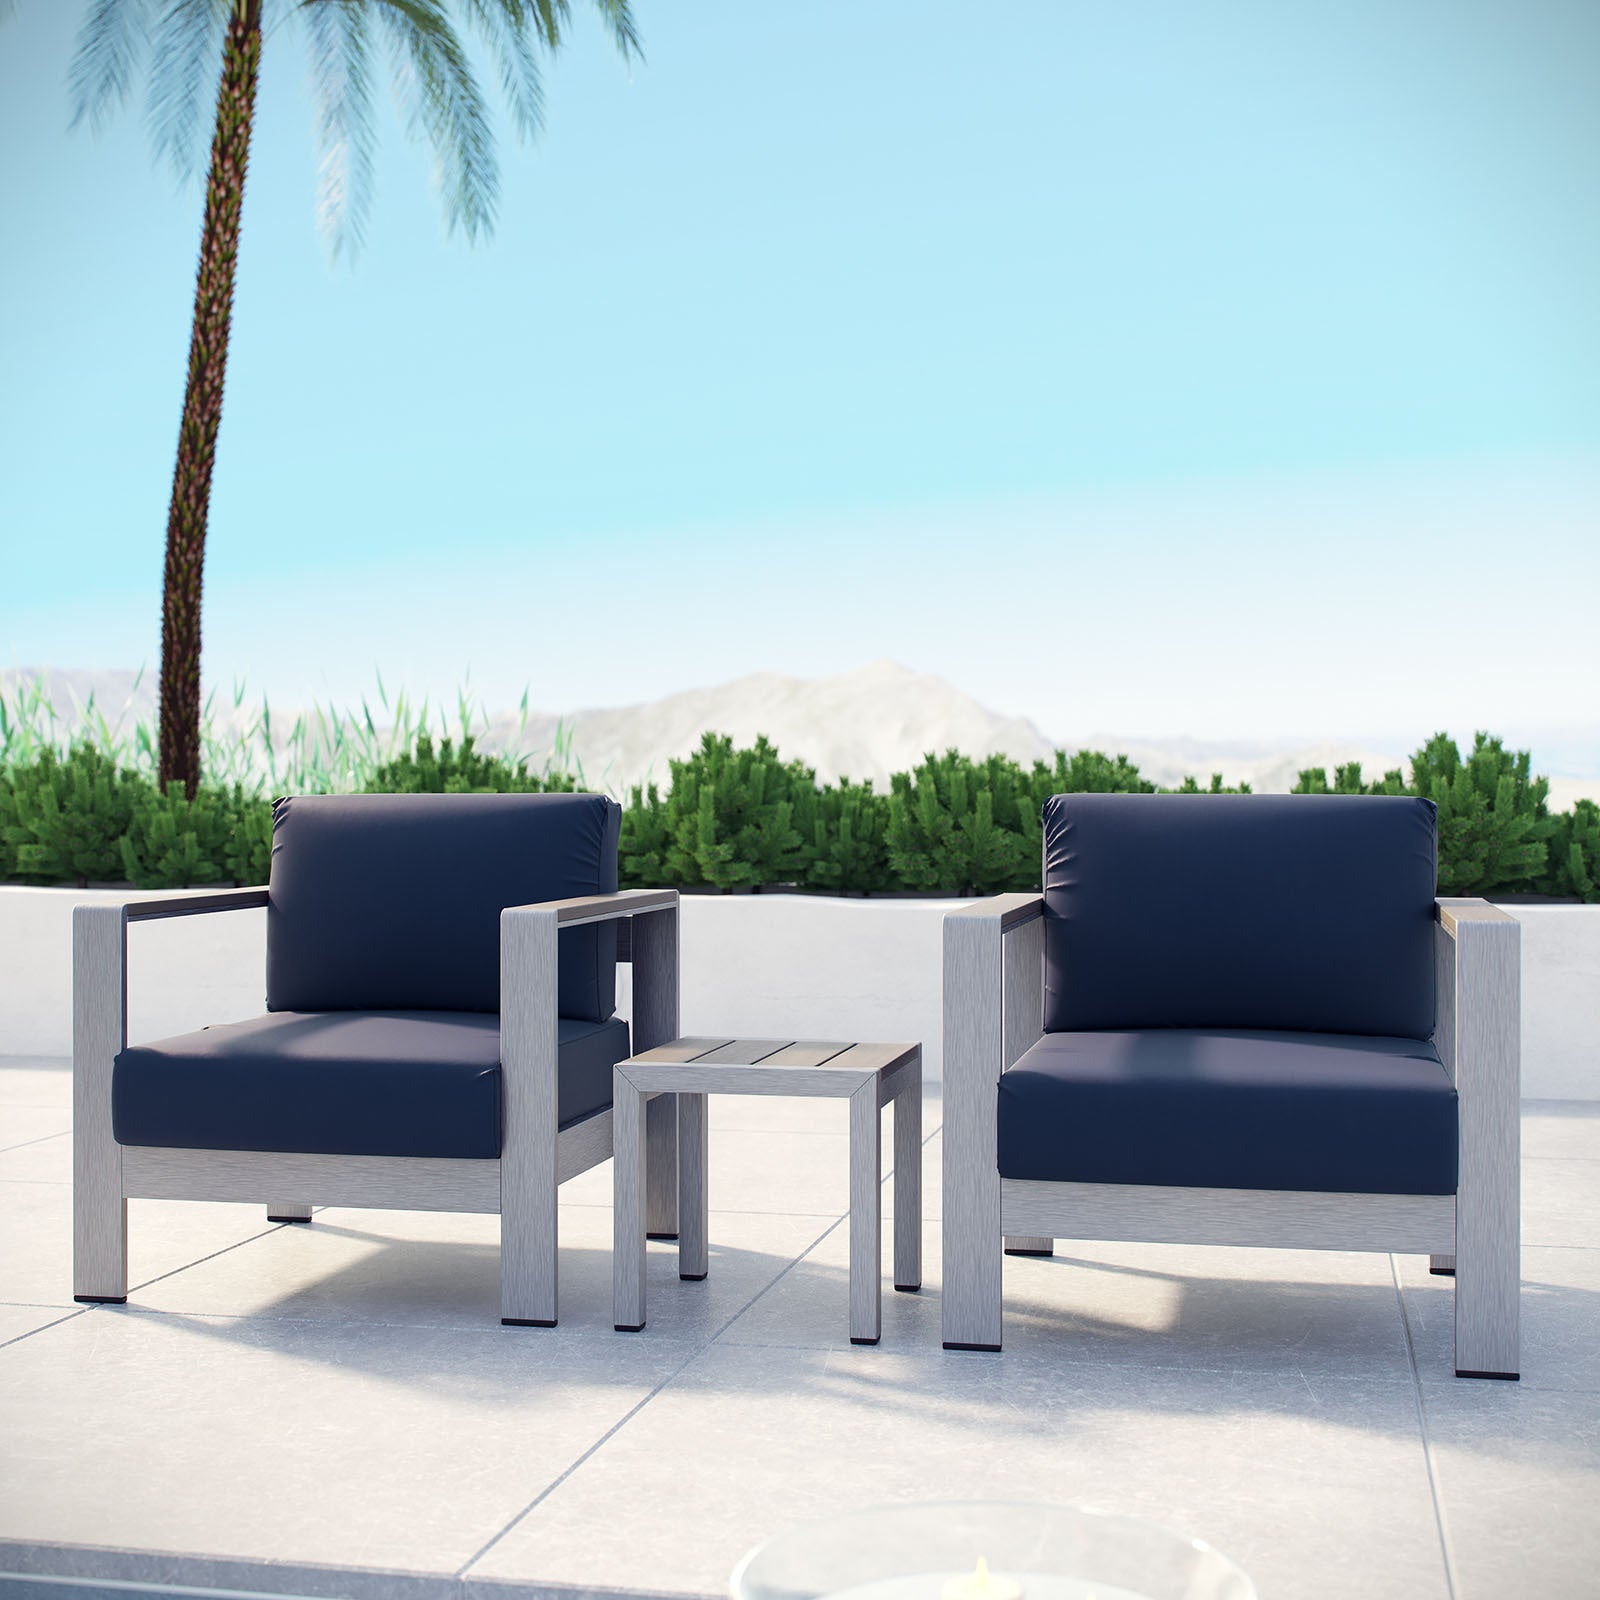 S Aluminum Outdoor Sectional Sofa Set Of 3 On Free Shipping Today 13476593